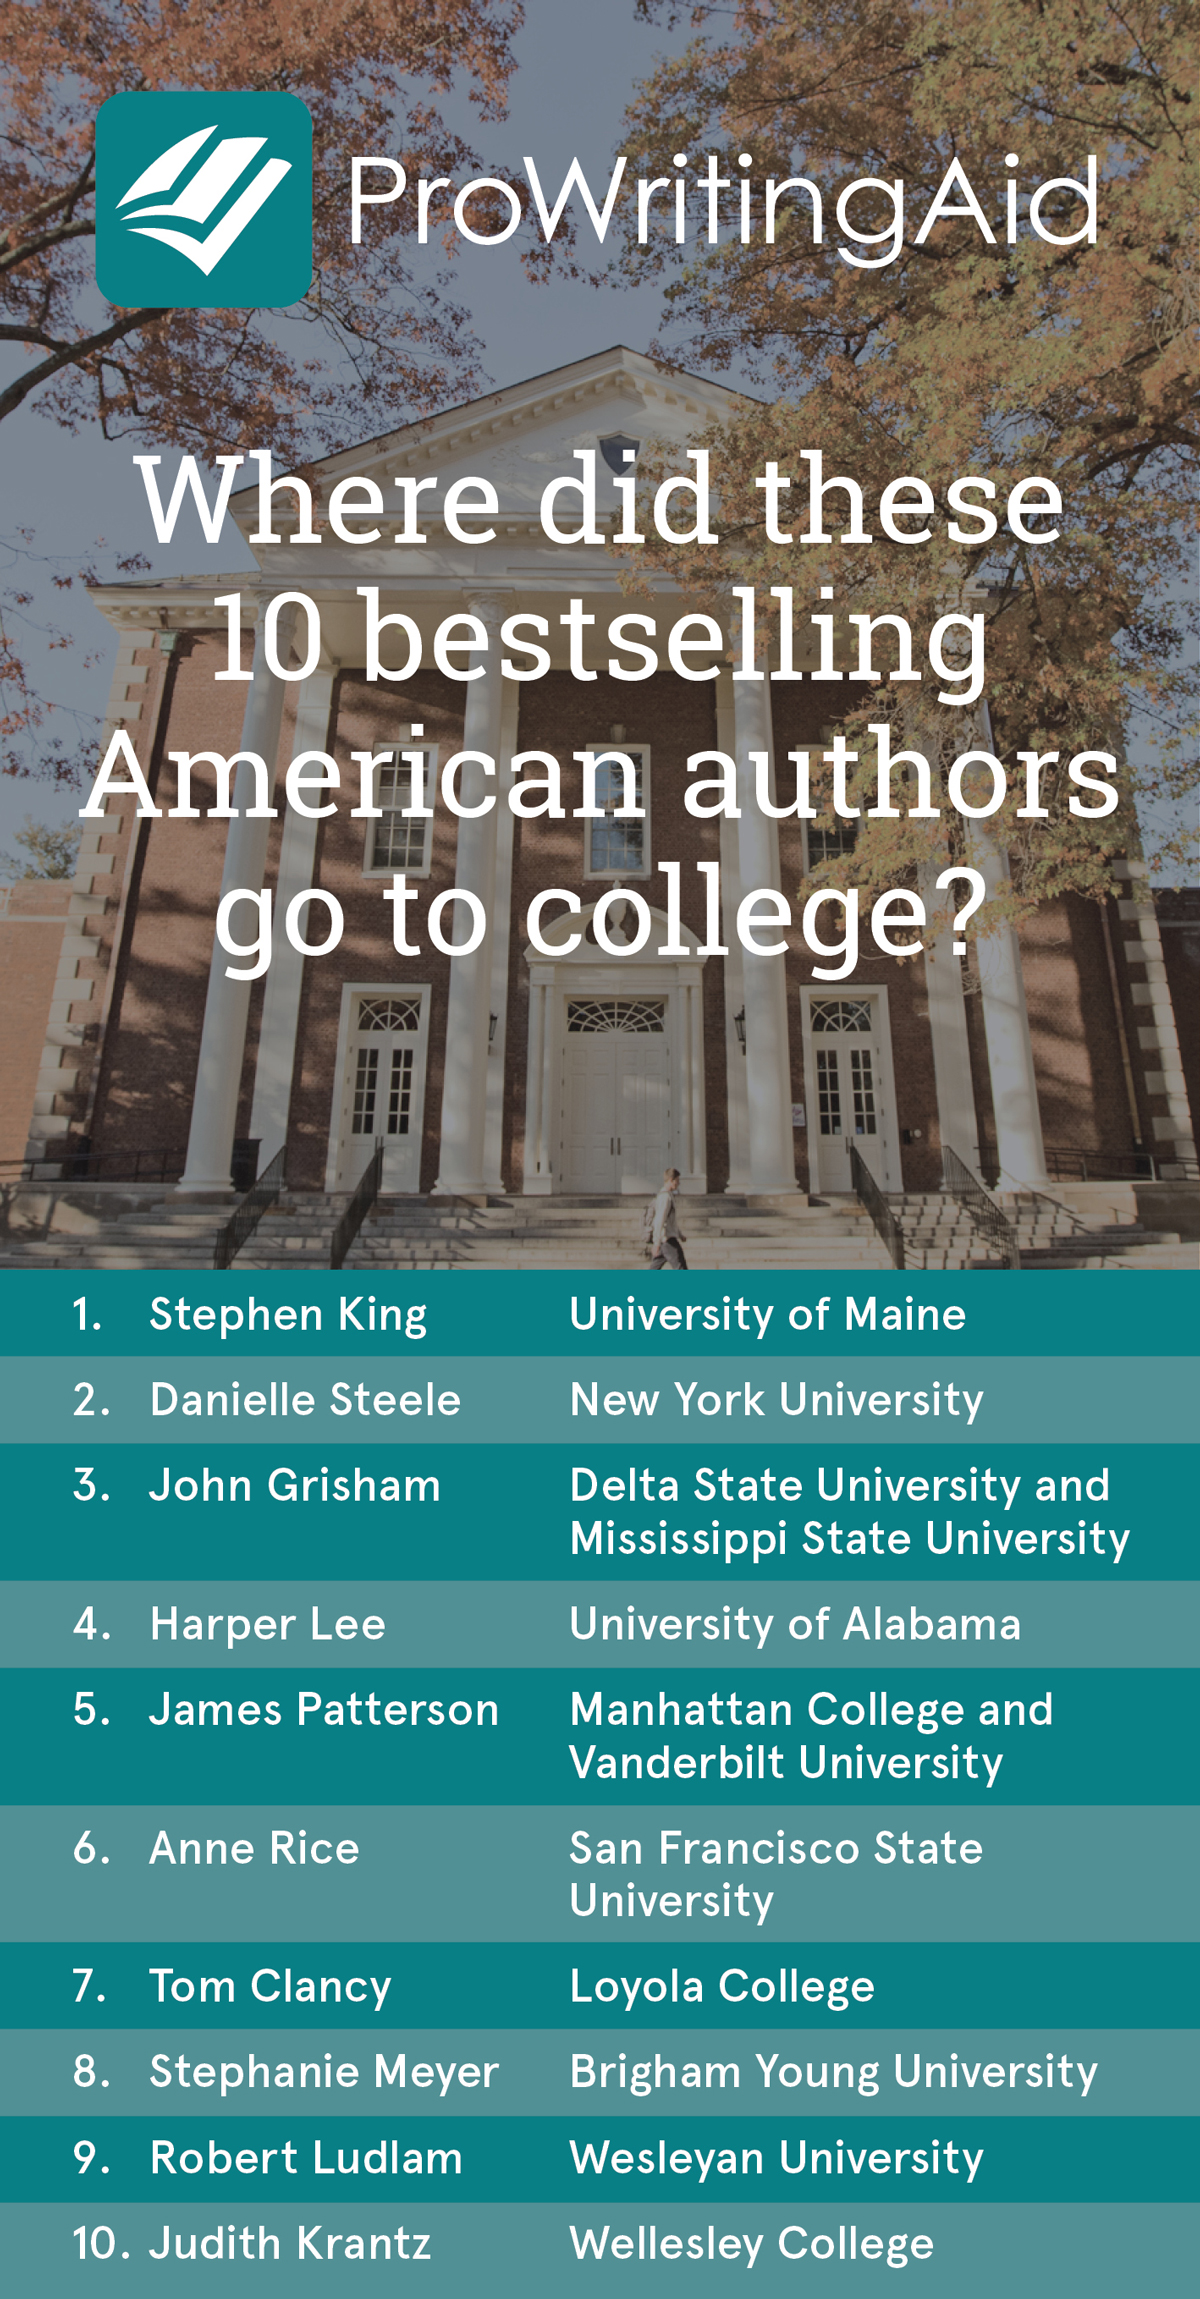 Where did these bestselling American authors go to college?